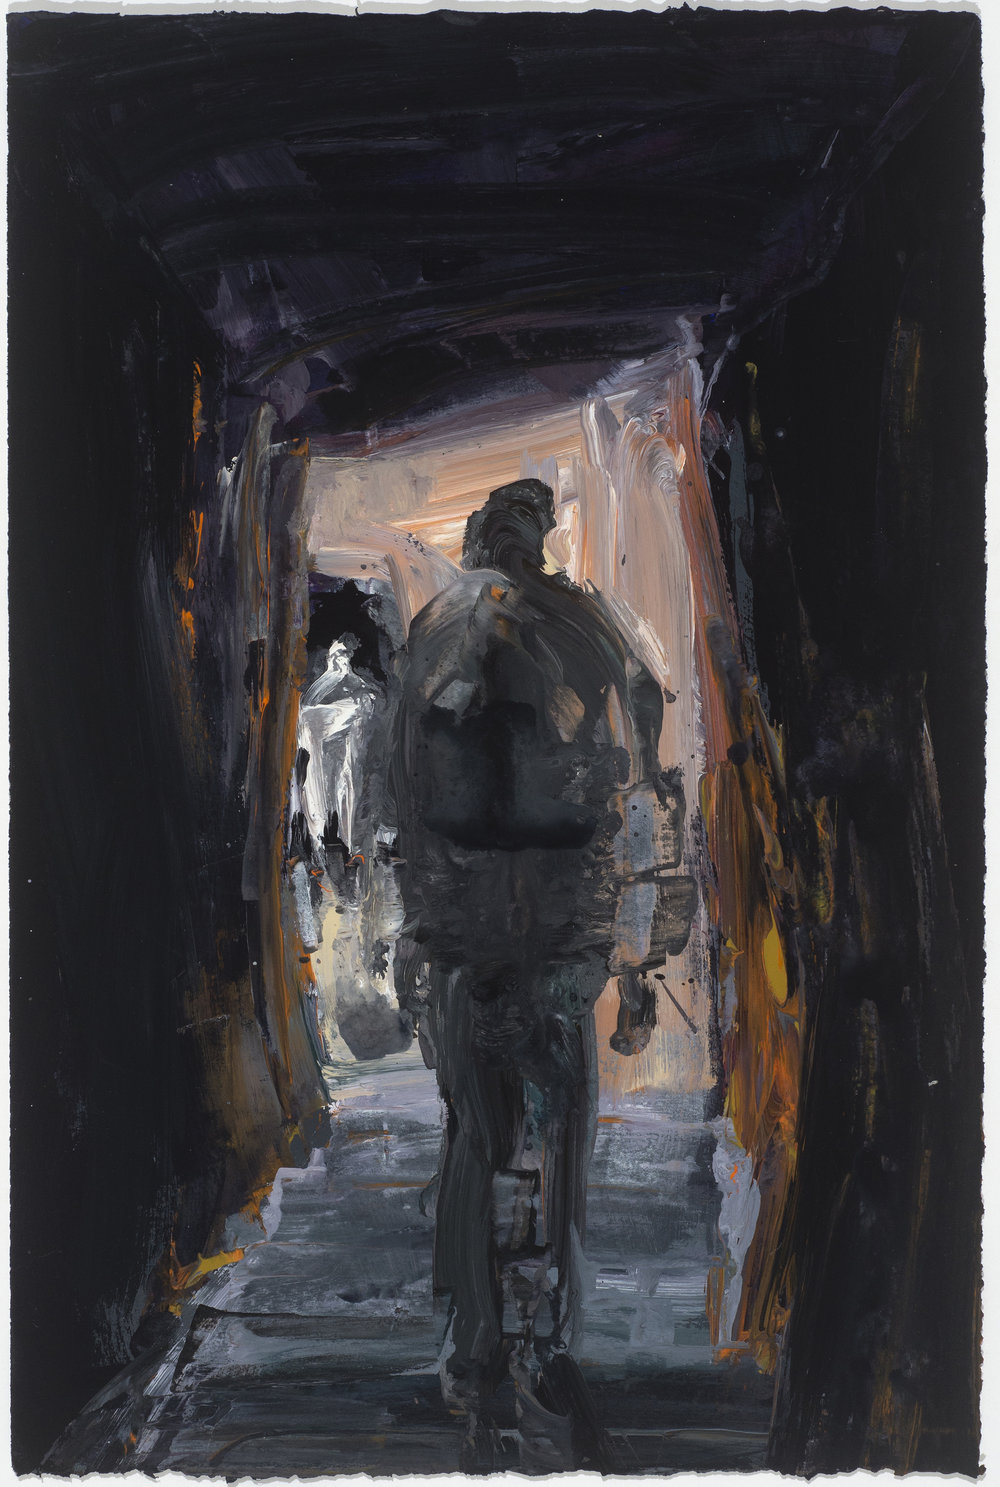 Cave study (Central light) 10/16  樓梯考察(點亮)10/16   Euan Macleod , 2016  Acrylic on paper, 58 x 38 cm, HKD 14,800 framed